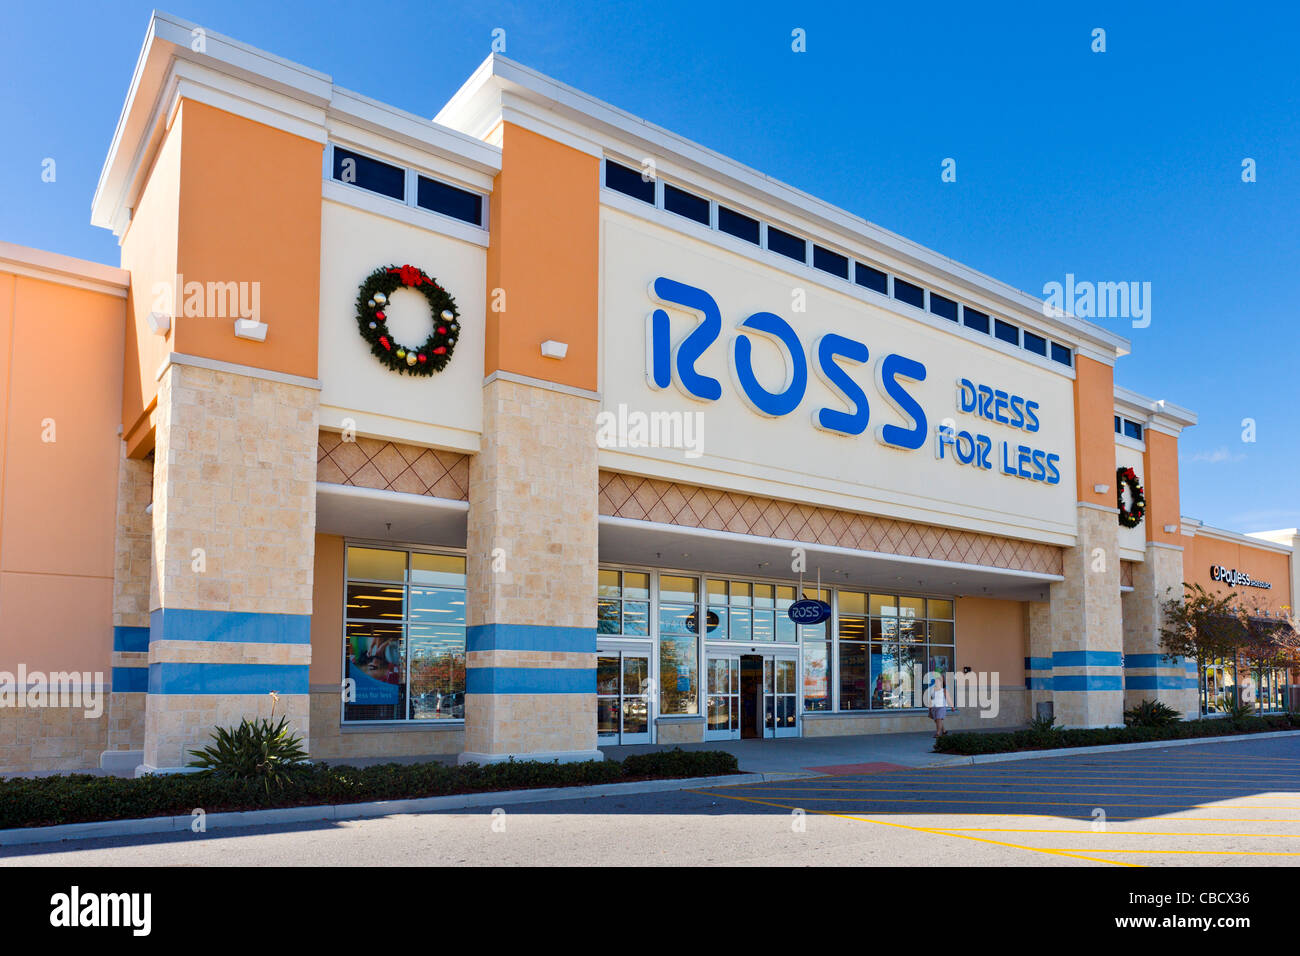 Ross Stores, Inc. is an American chain of off-price department stores headquartered in Dublin, California, officially operating under the brandname, Ross Dress for Founded: ; 36 years ago, Pacifica, California, U.S.